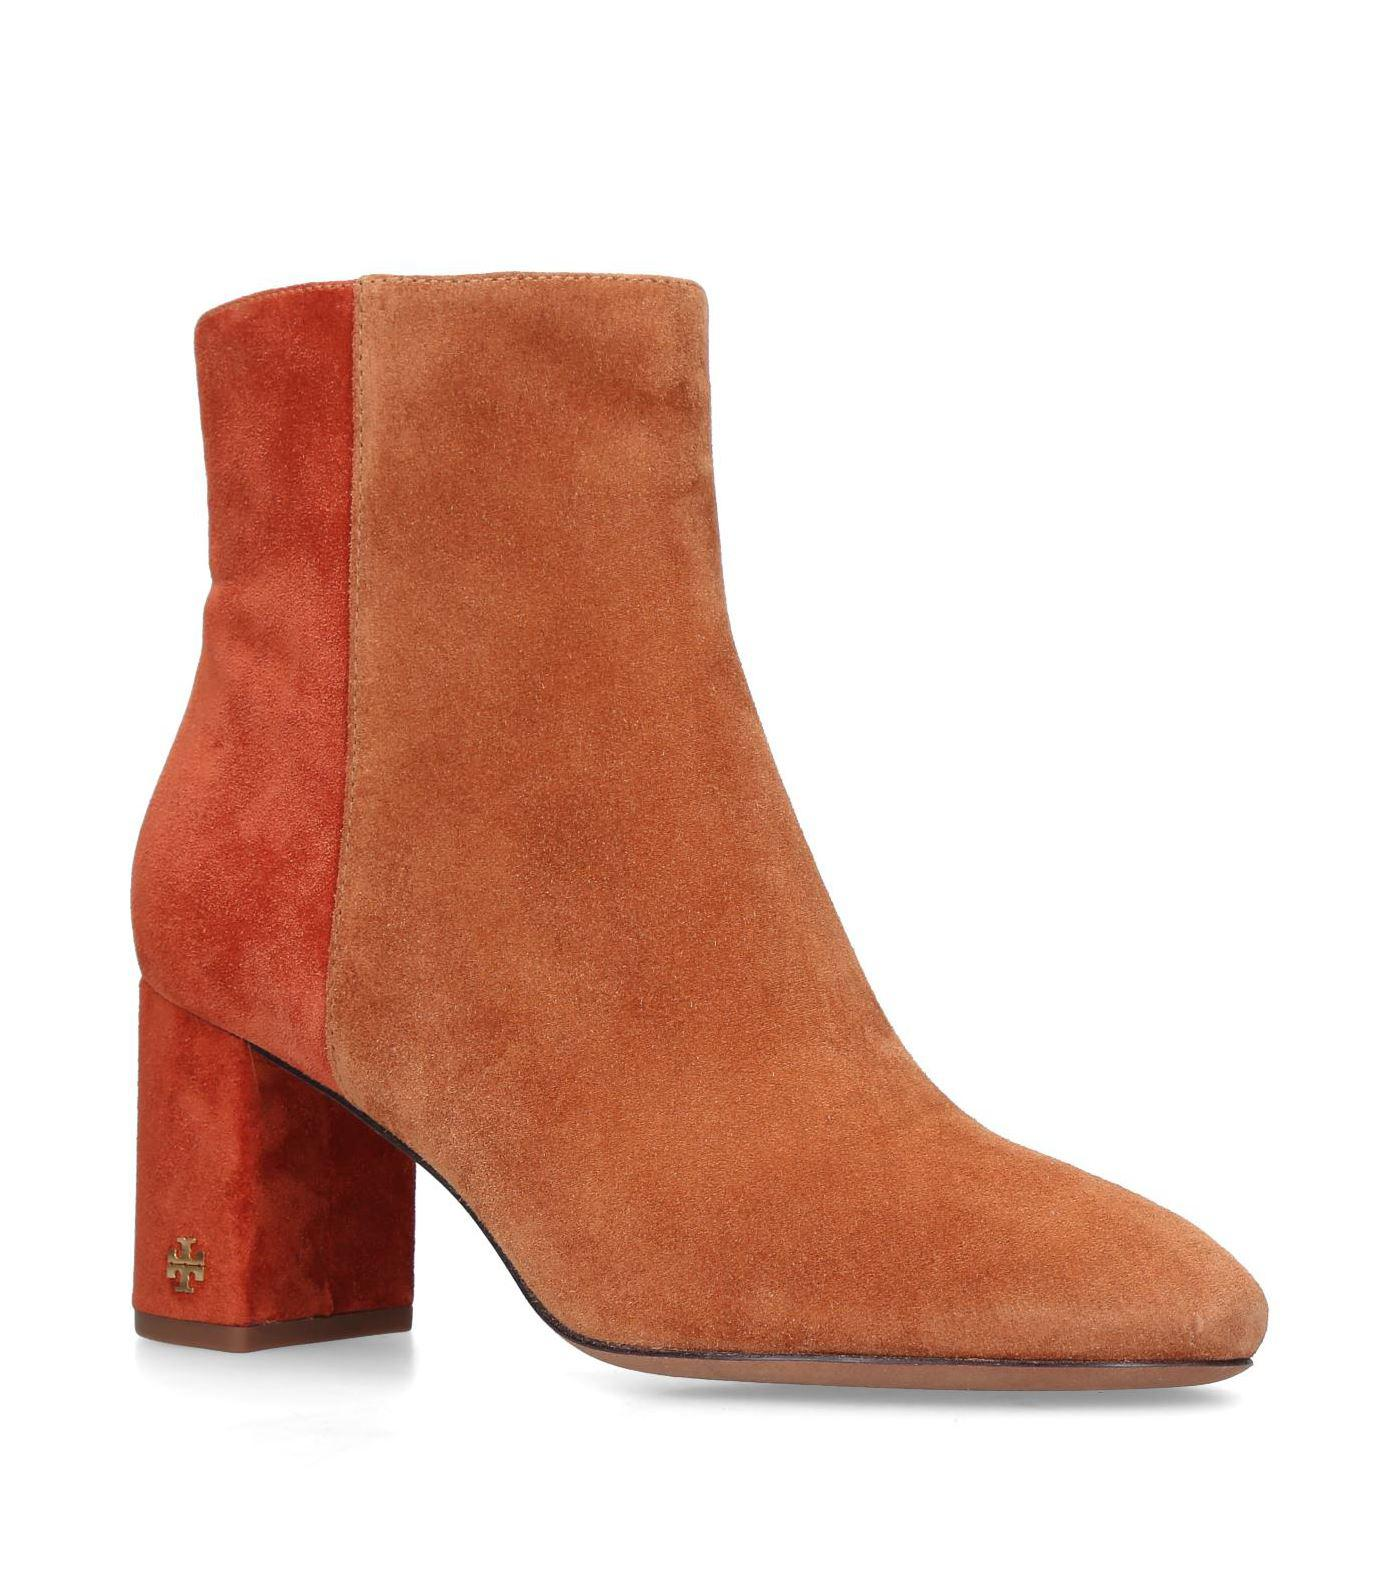 42de4c344 Lyst - Tory Burch Suede Brooke Ankle Boots 70 in Brown